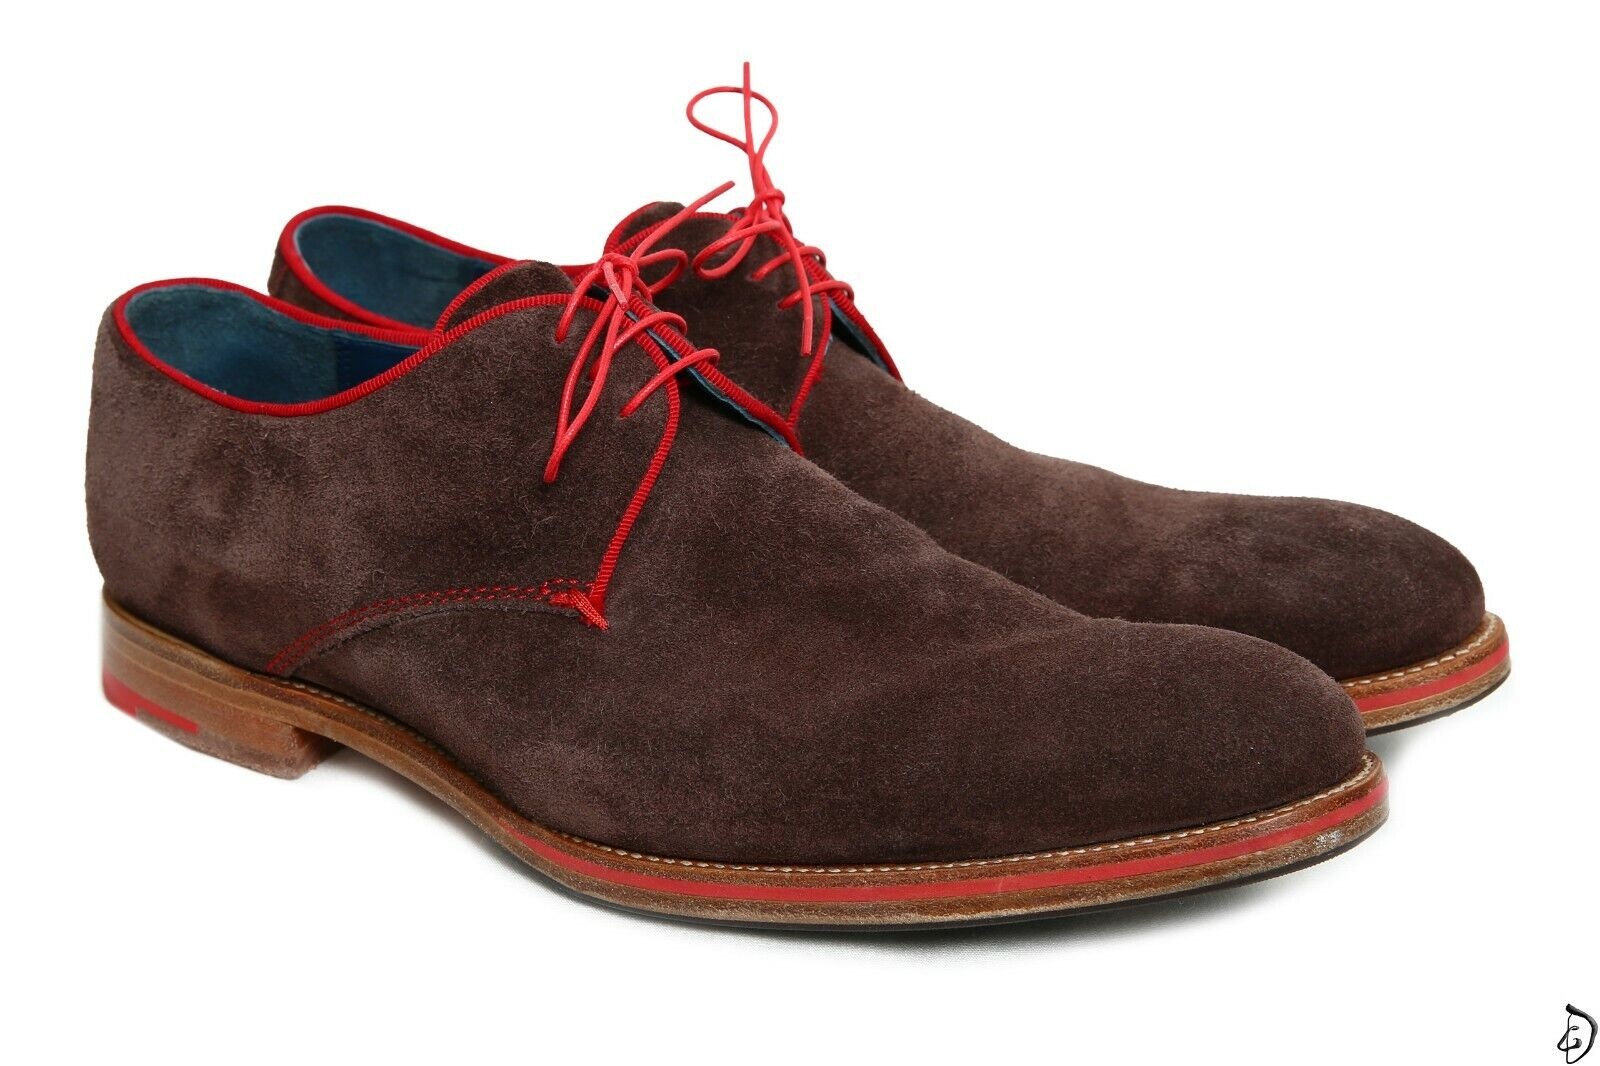 320  Barker oxford 11 size Brown suede red trim Made in England